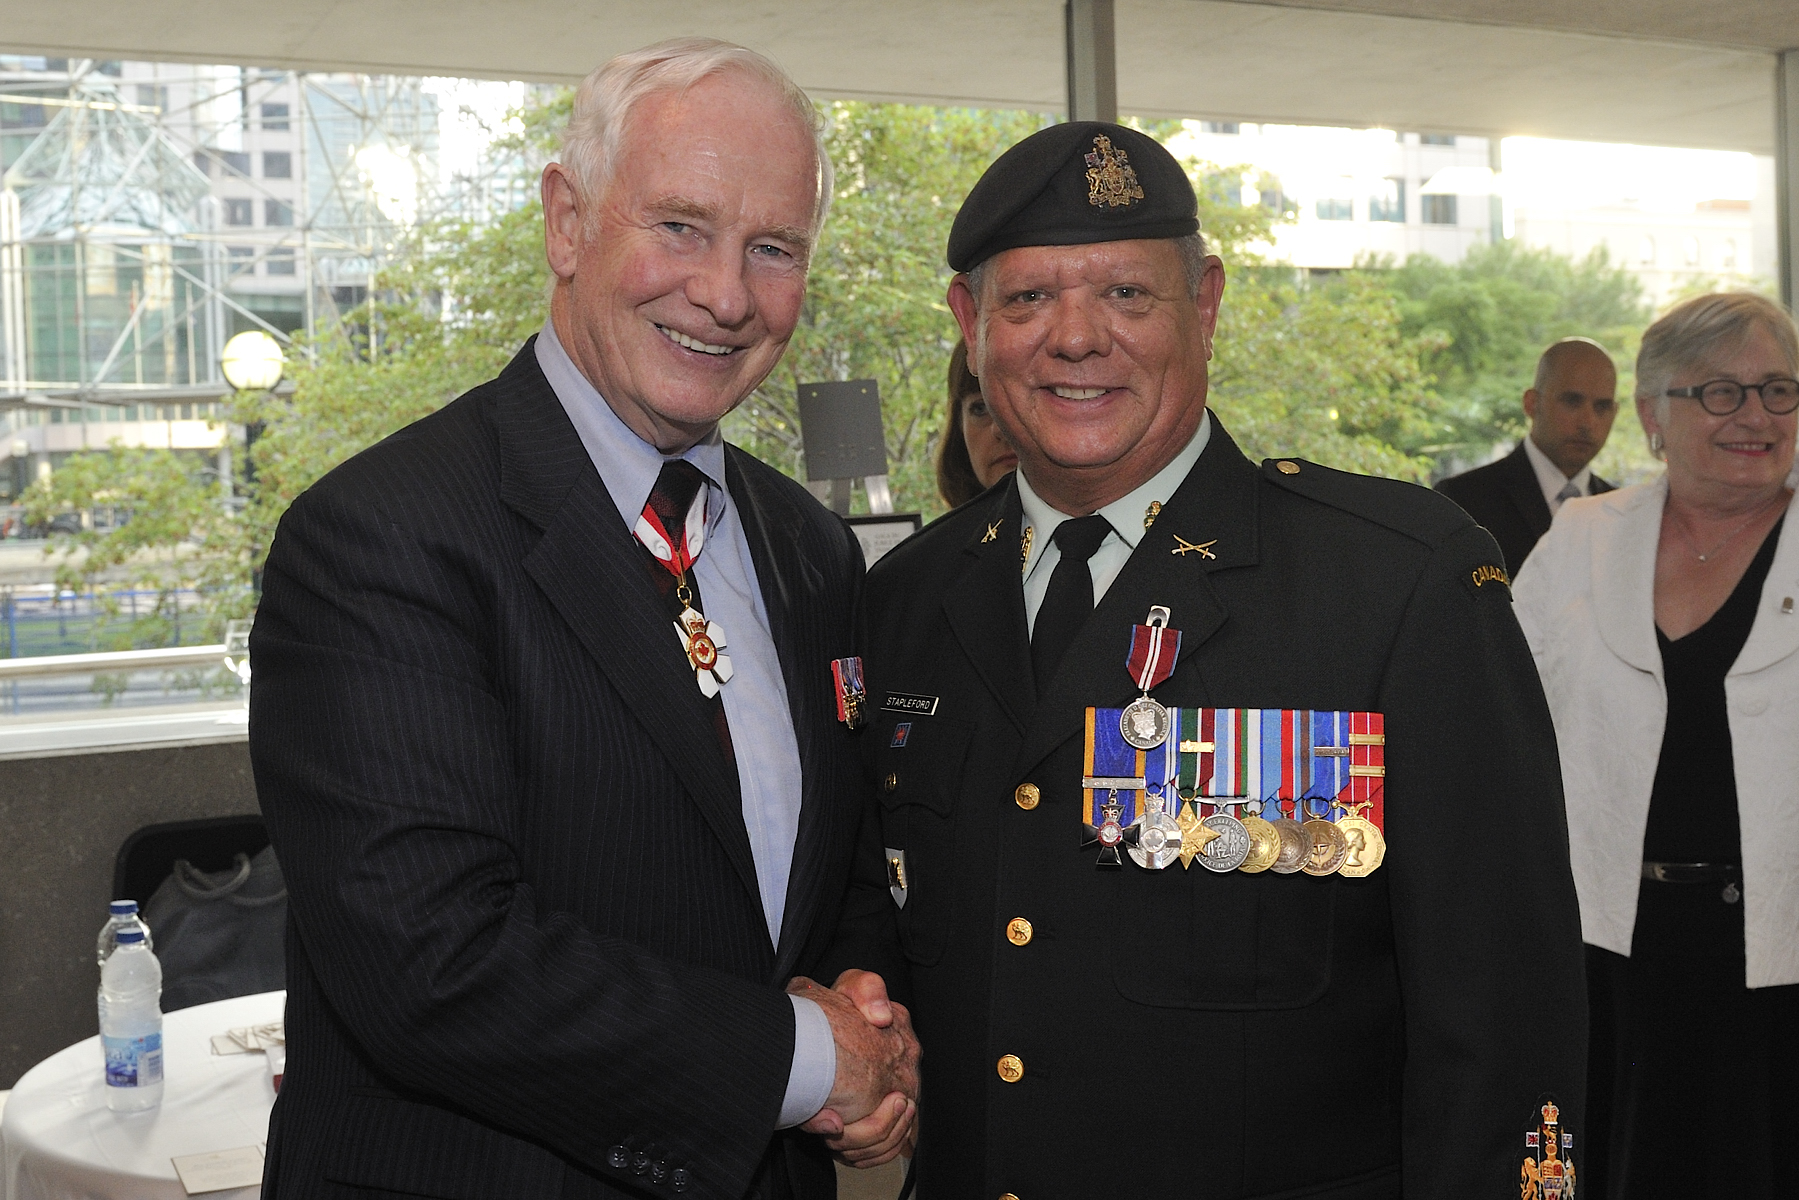 During the evening, over 600 recipients were presented with the Diamond Jubilee Medal. His Excellency presented a few of these medals to eminent Canadians. Chief Warrant Officer Andrew Peter Stapleford, M.M.M., M.S.M., C.D., was one of the recipients.